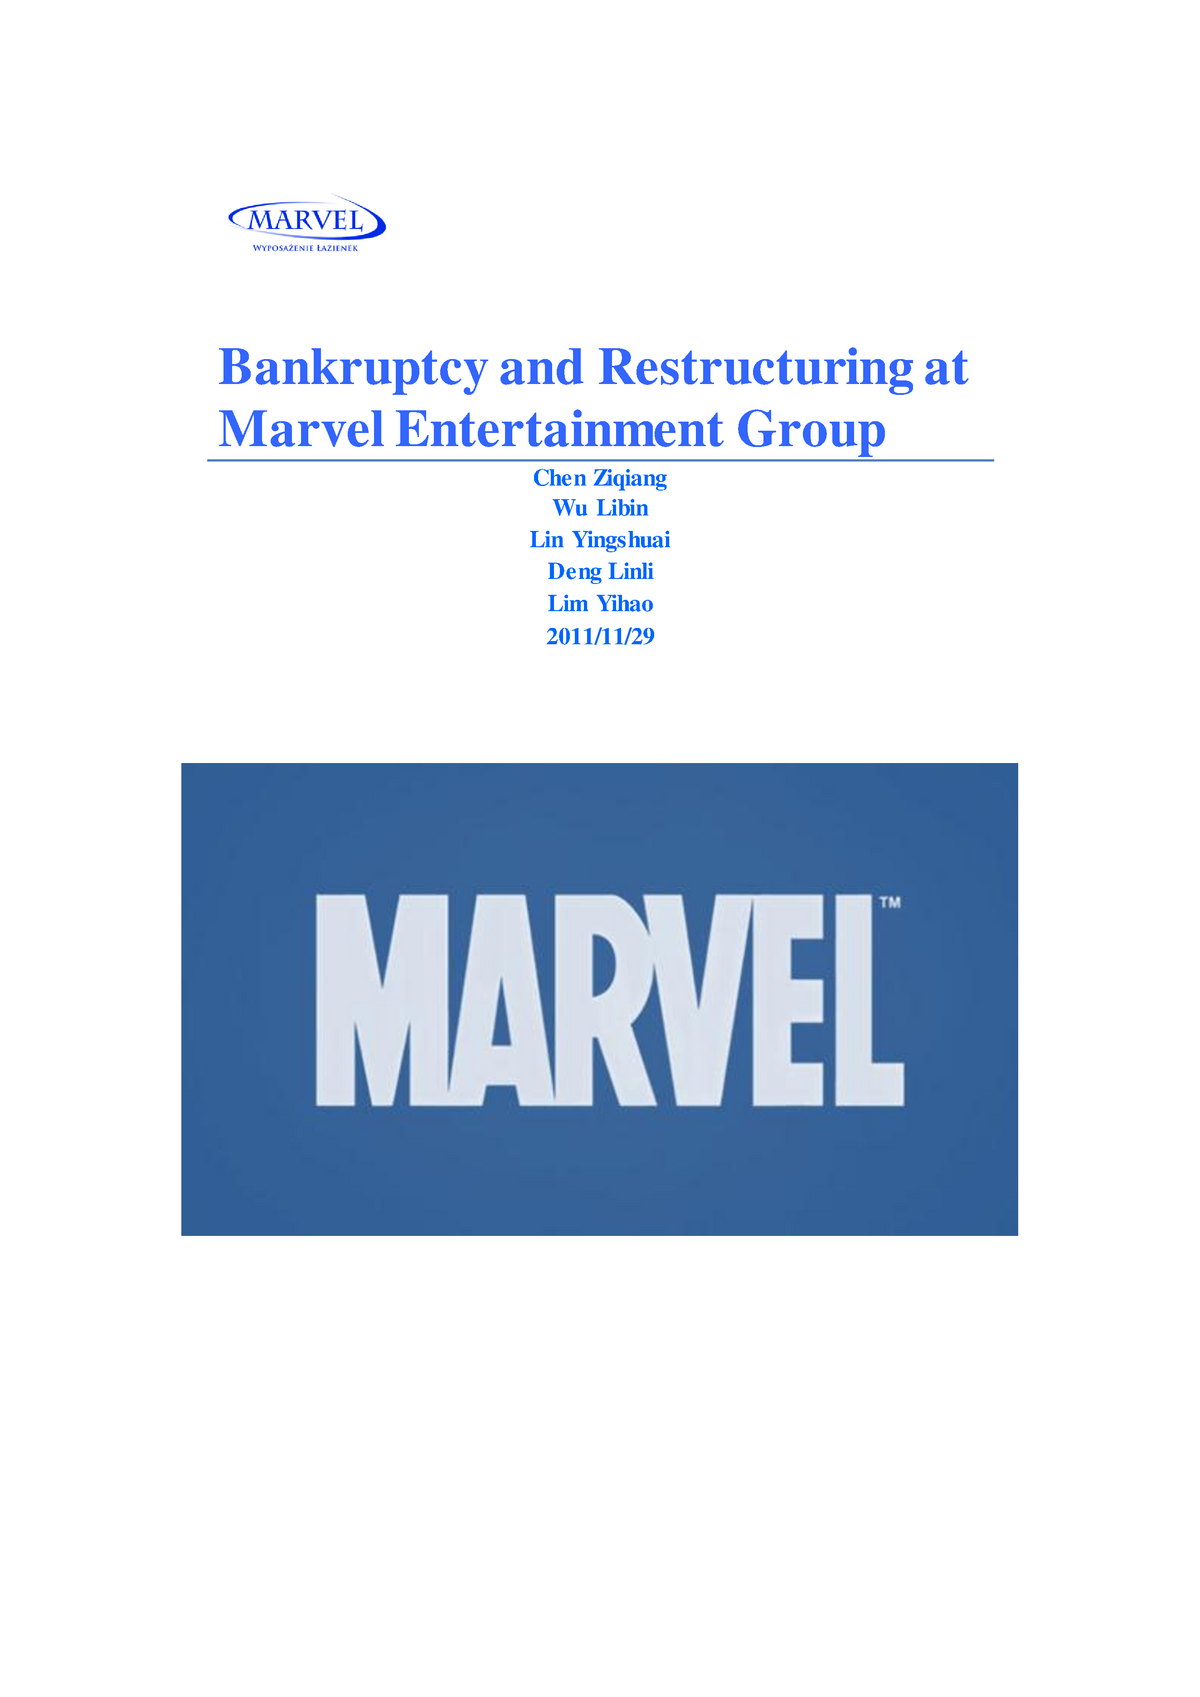 why did marvel file for chapter 11